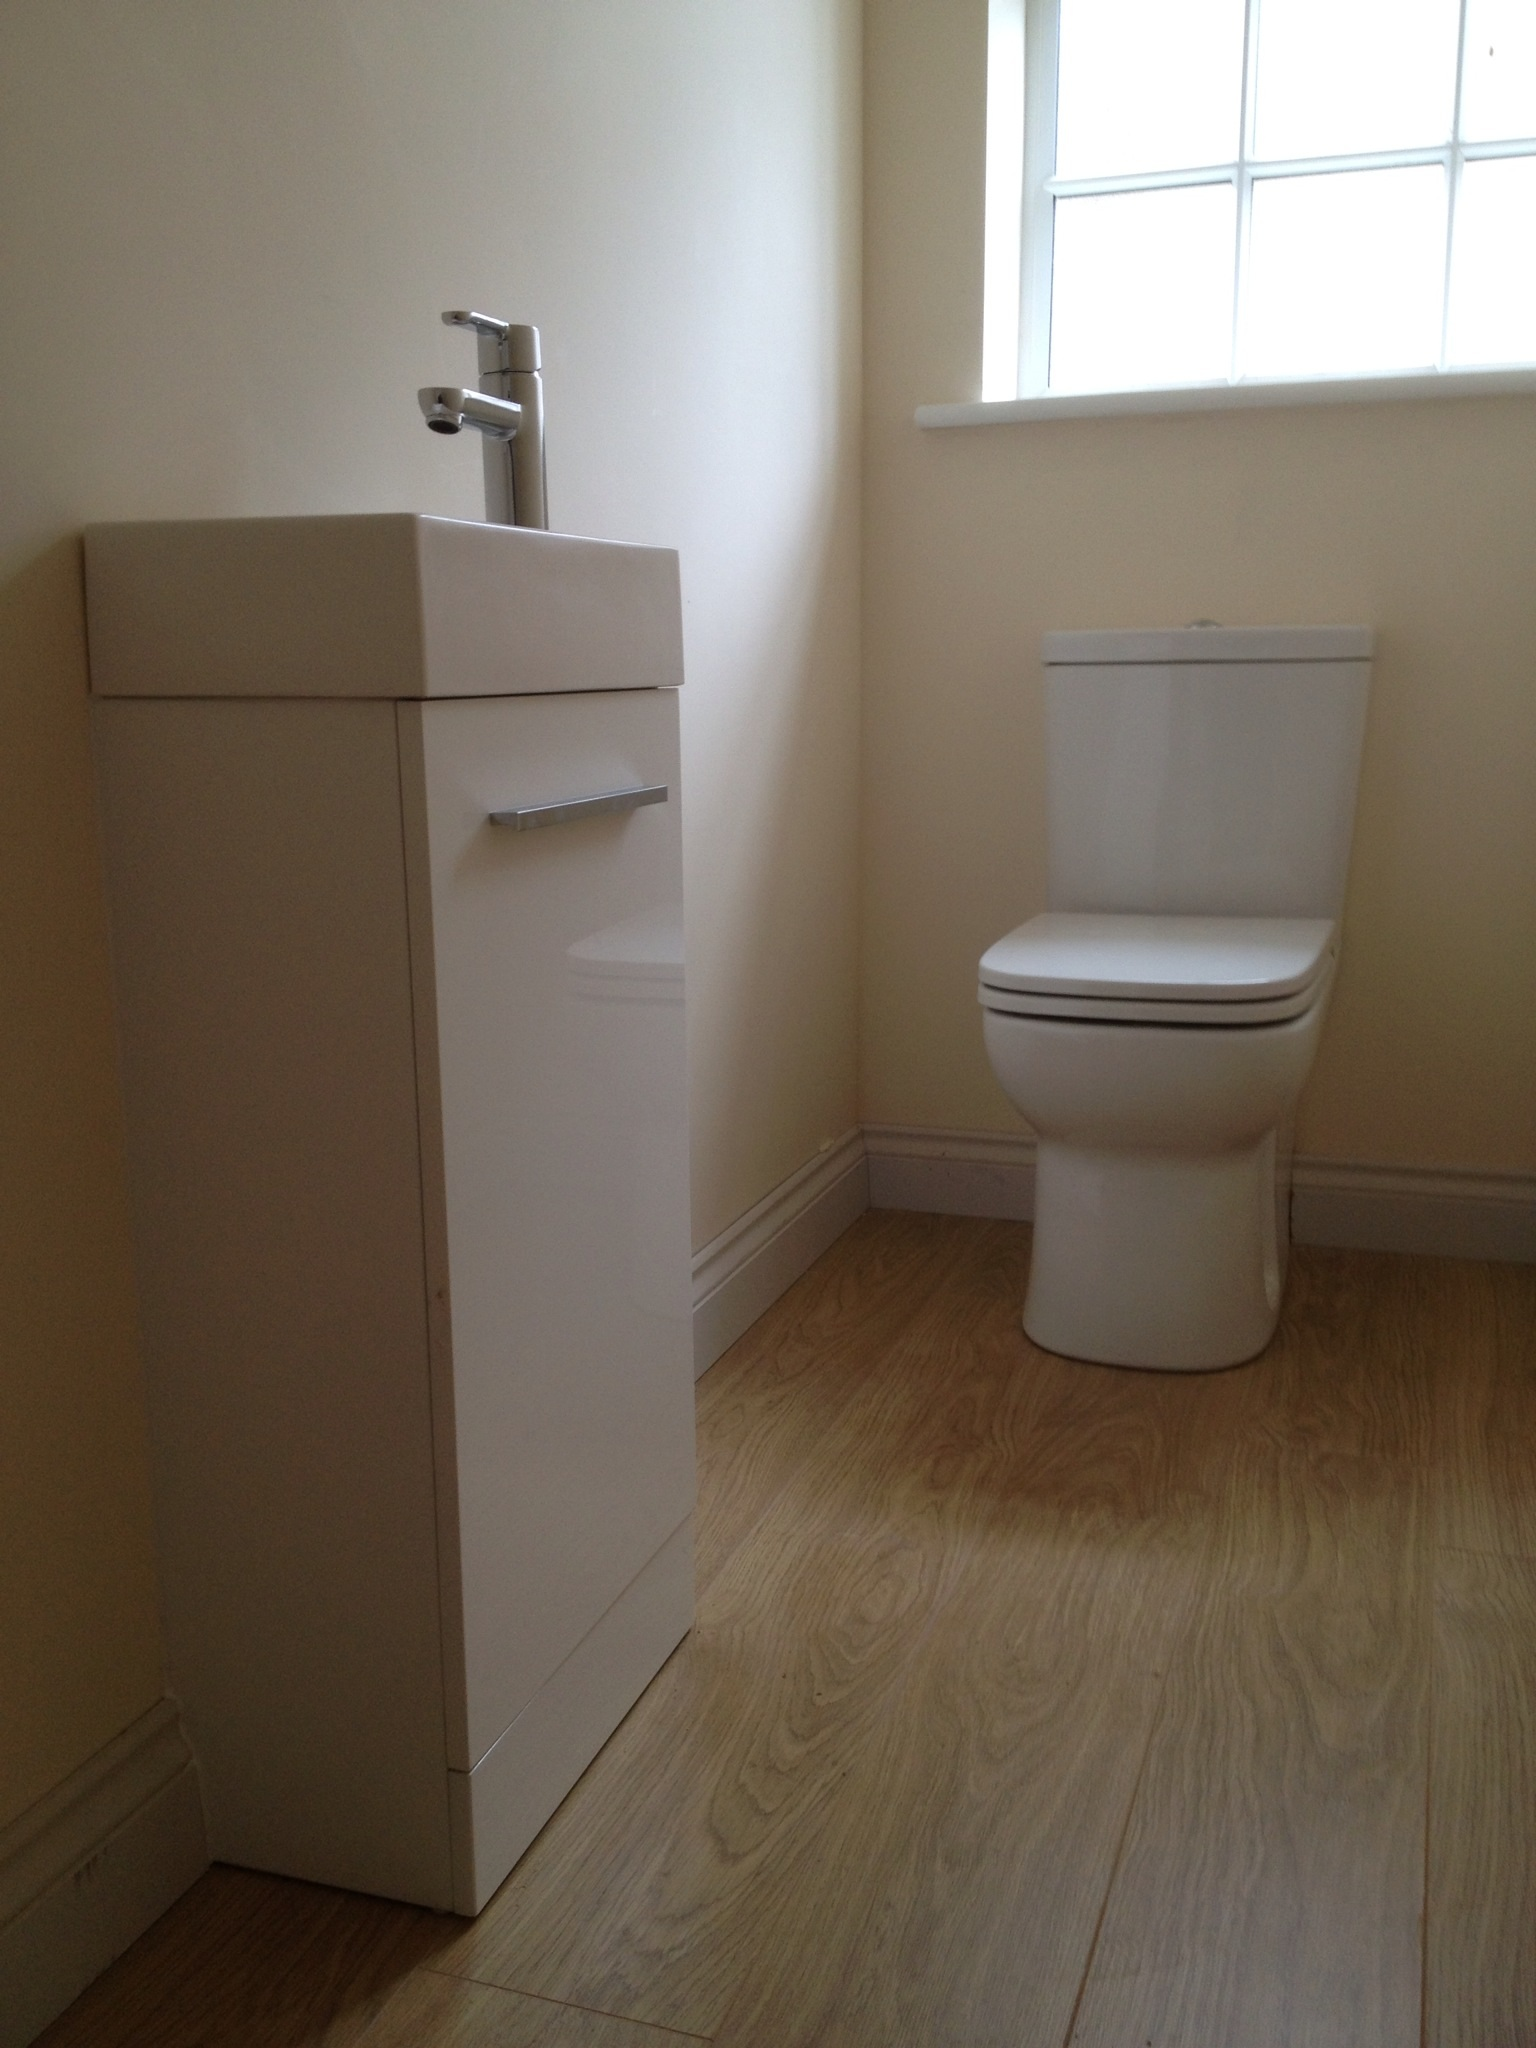 Cloakroom Downstairs Toilet Paul Chaplow Plumbing And